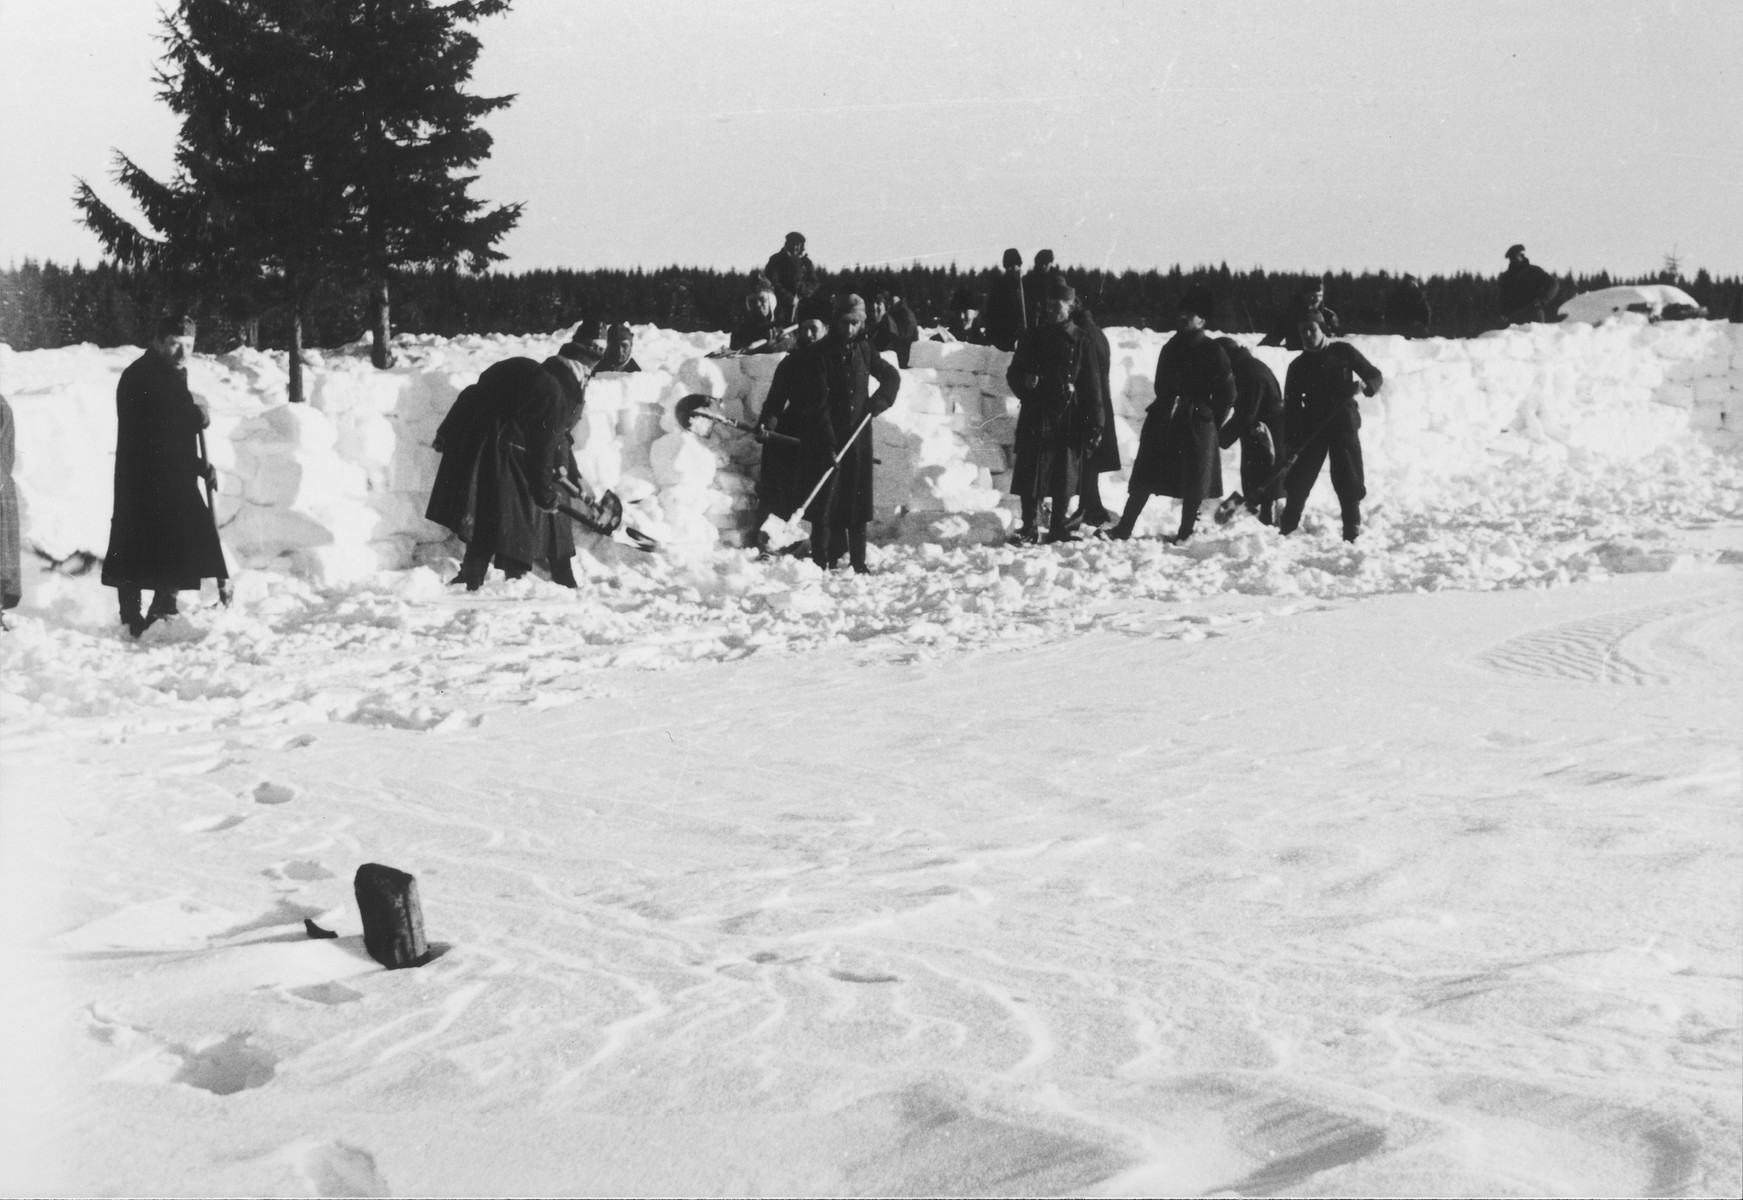 Jewish conscripts in Company 108/57 of the Hungarian Labor Service at forced labor constructing a barricade to prevent snow from drifting onto a road.